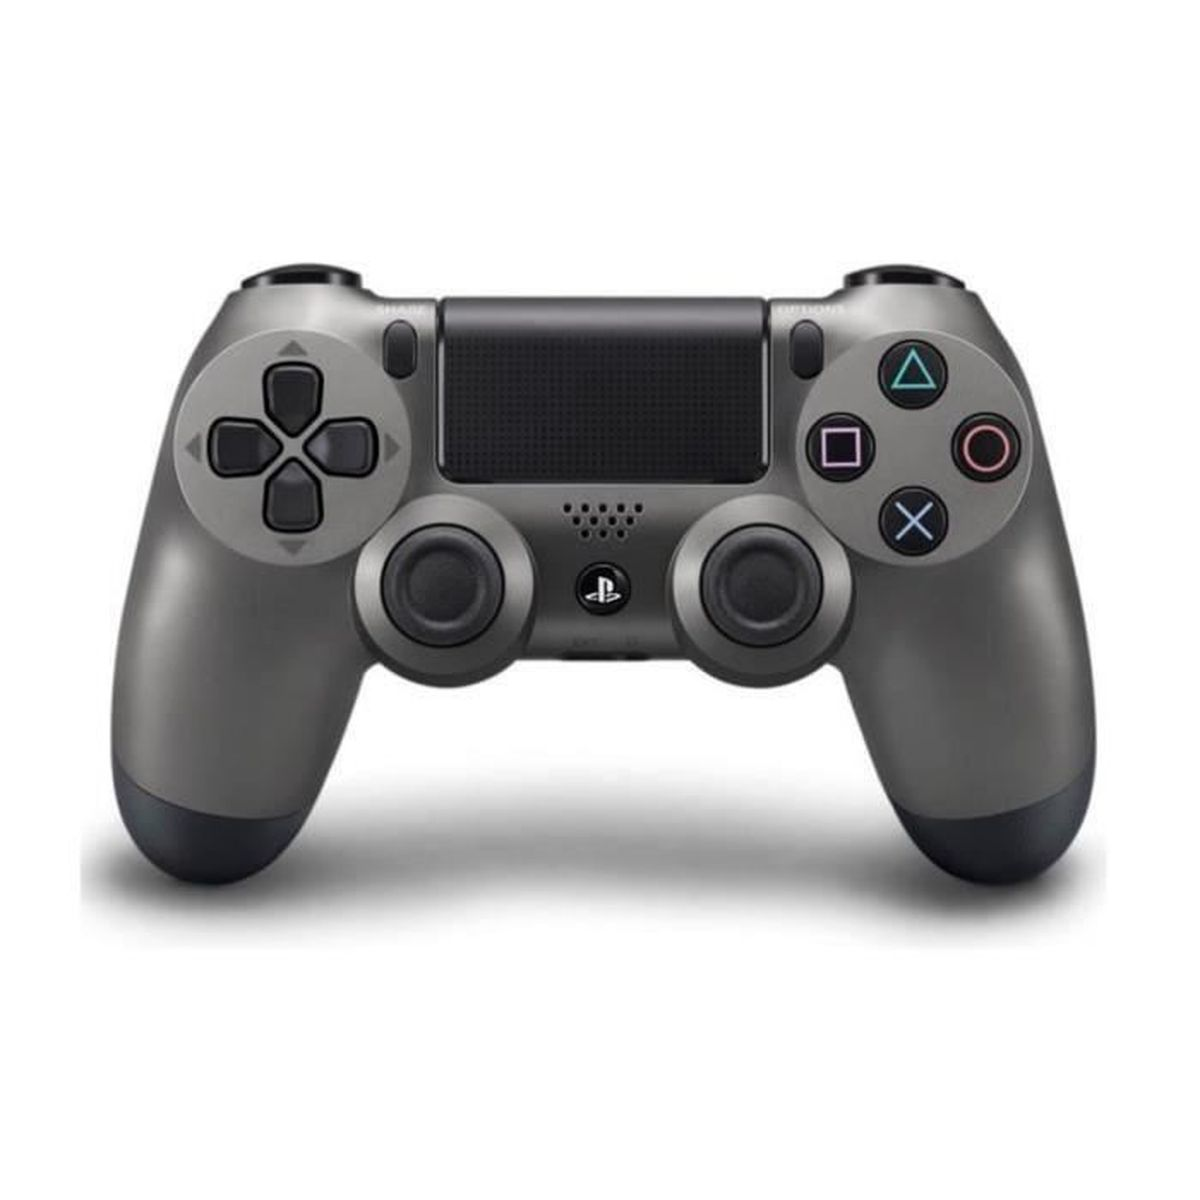 manette dualshock 4 steel black ps4 2 boutons thumbstick offert prix pas cher cdiscount. Black Bedroom Furniture Sets. Home Design Ideas